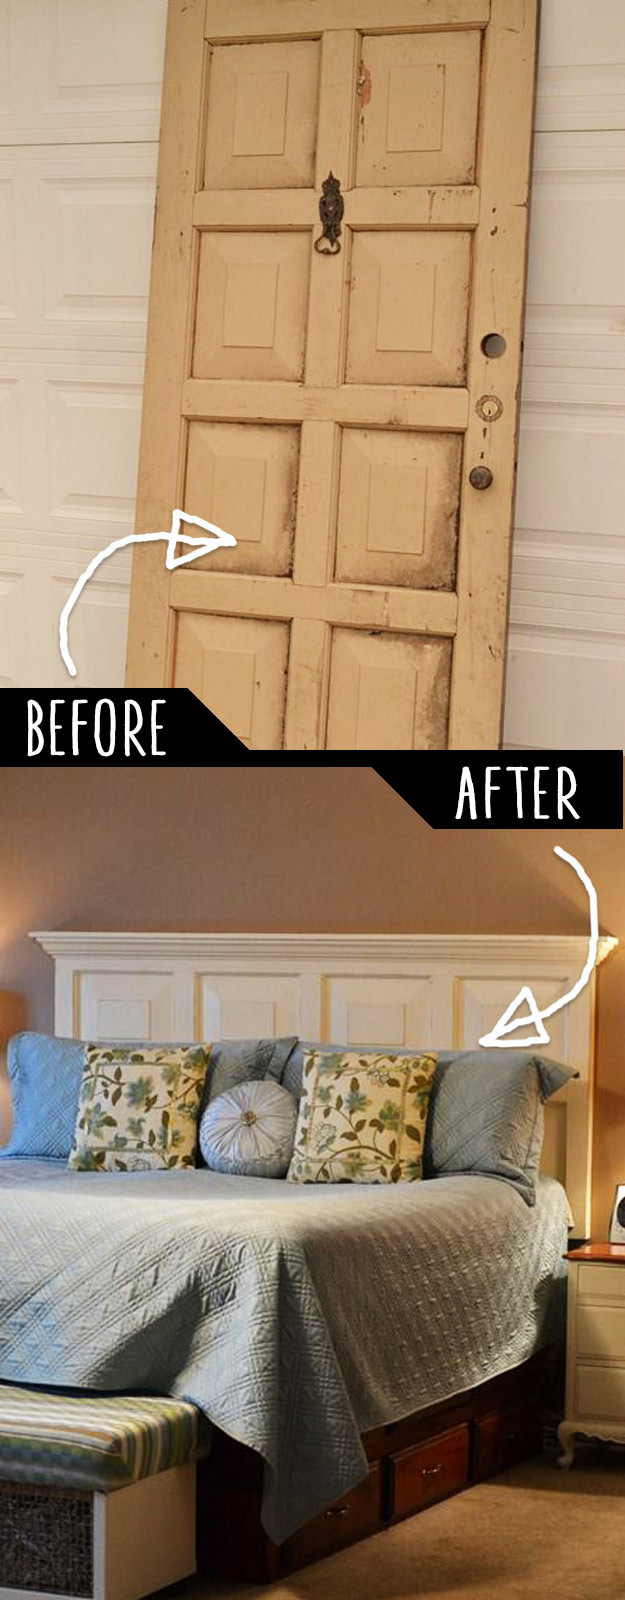 Cheap Home Decor And Furniture cheap home decor and furniture wonderful with photos of cheap home photography fresh on Diy Furniture Hacks Door Headboard Cool Ideas For Creative Do It Yourself Furniture Made